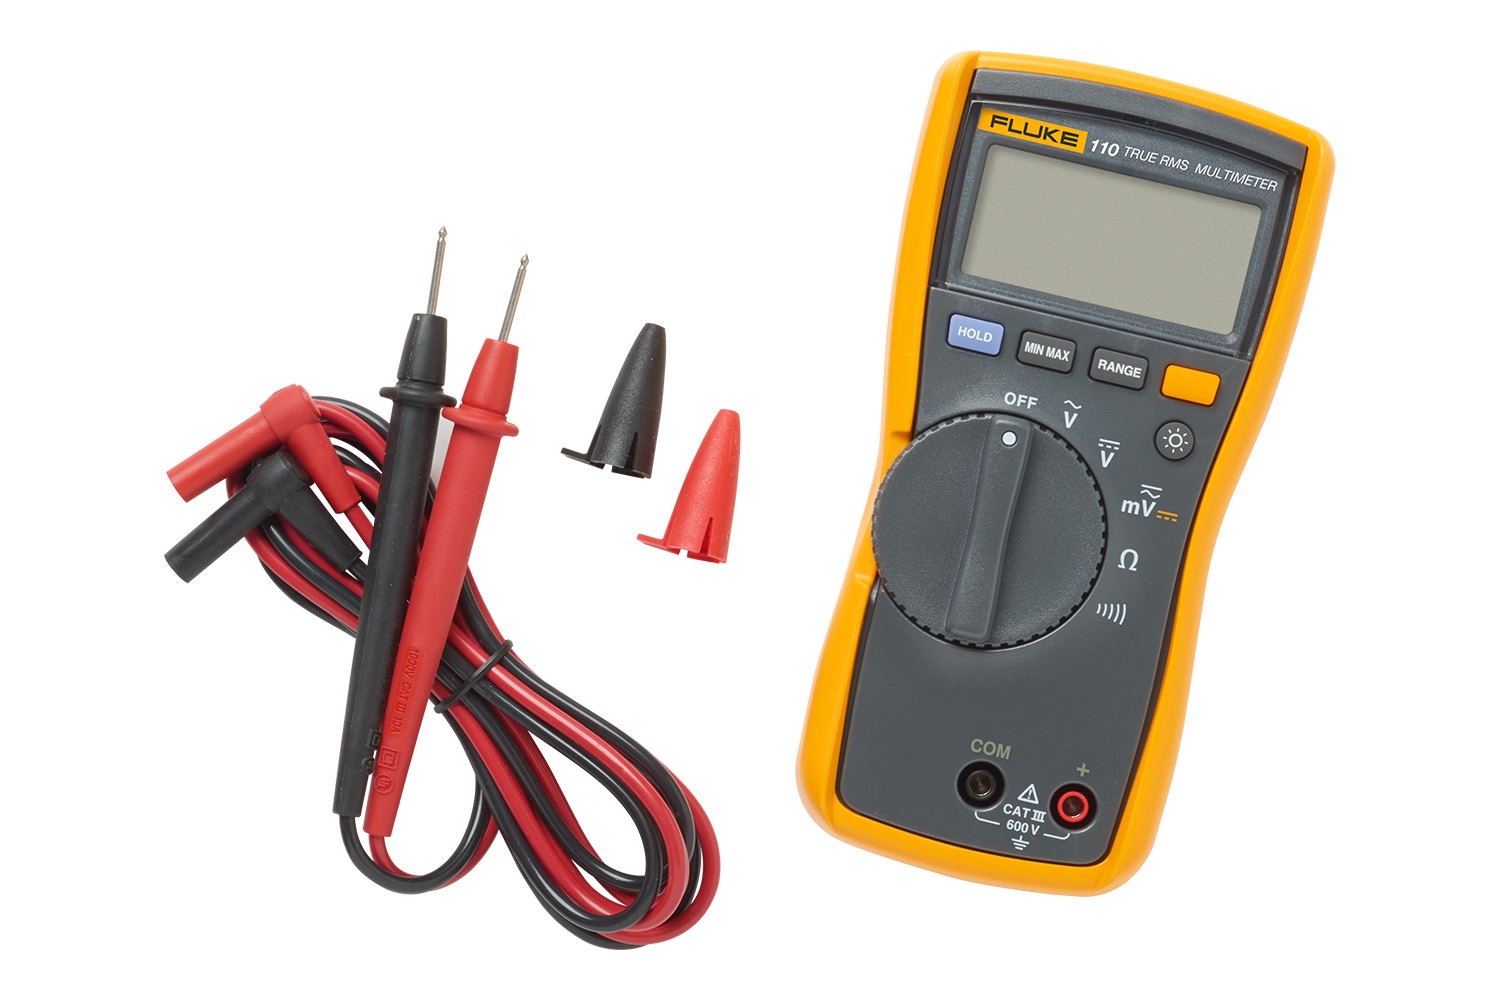 Fluke-110-dmm-included.jpg